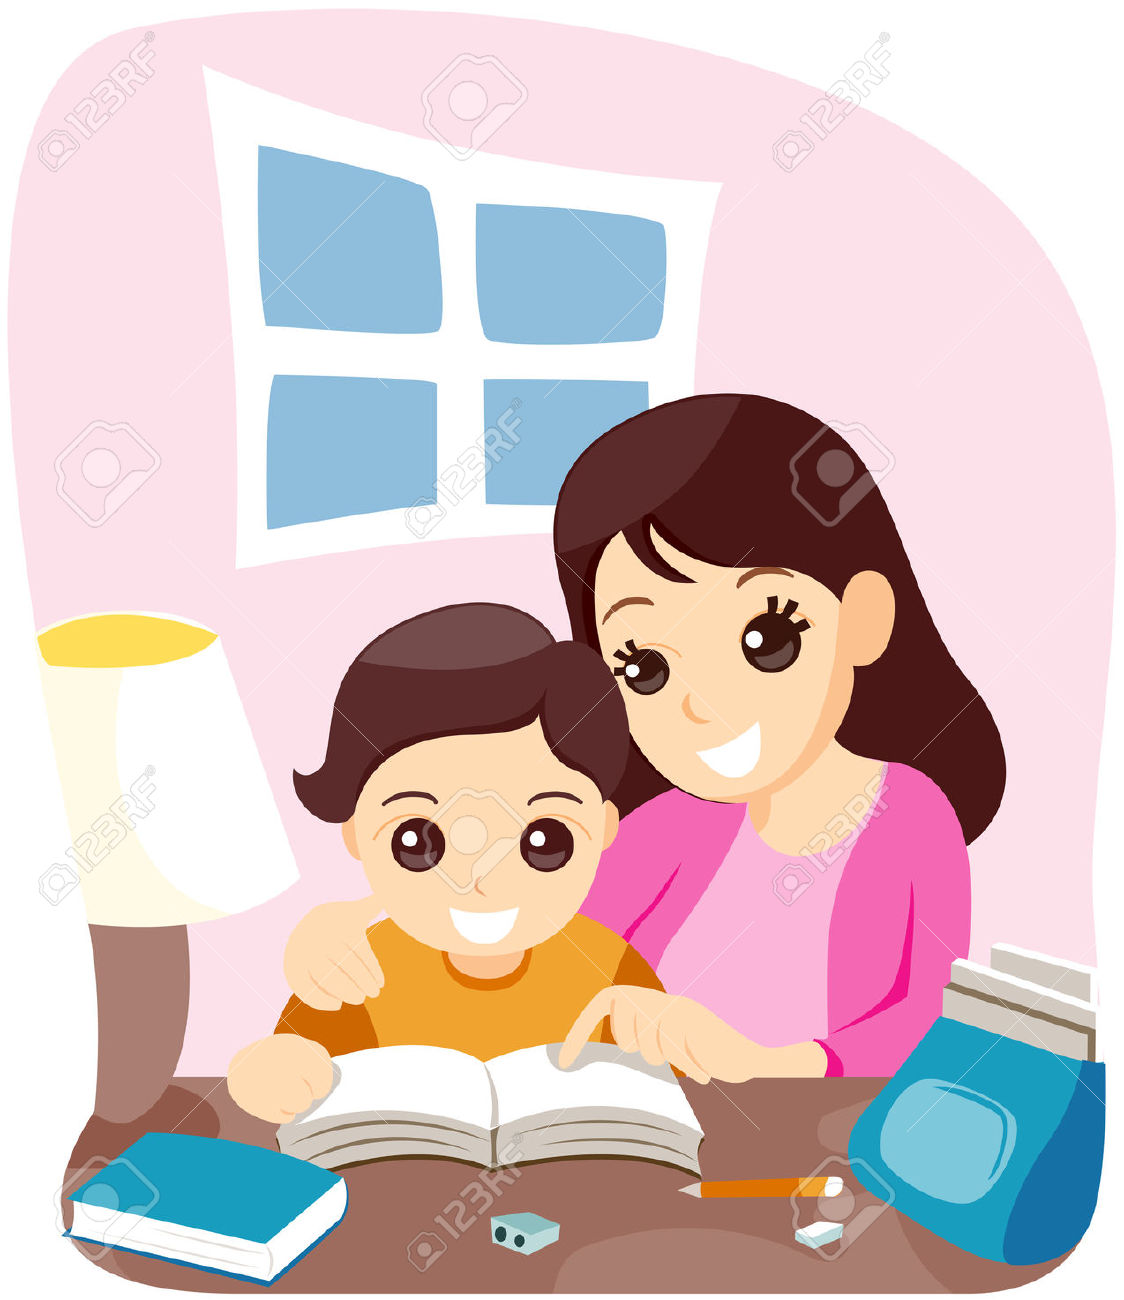 Boy turning in assignment to teacher clipart graphic library library Boy turning in assignment to teacher clipart - ClipartNinja graphic library library